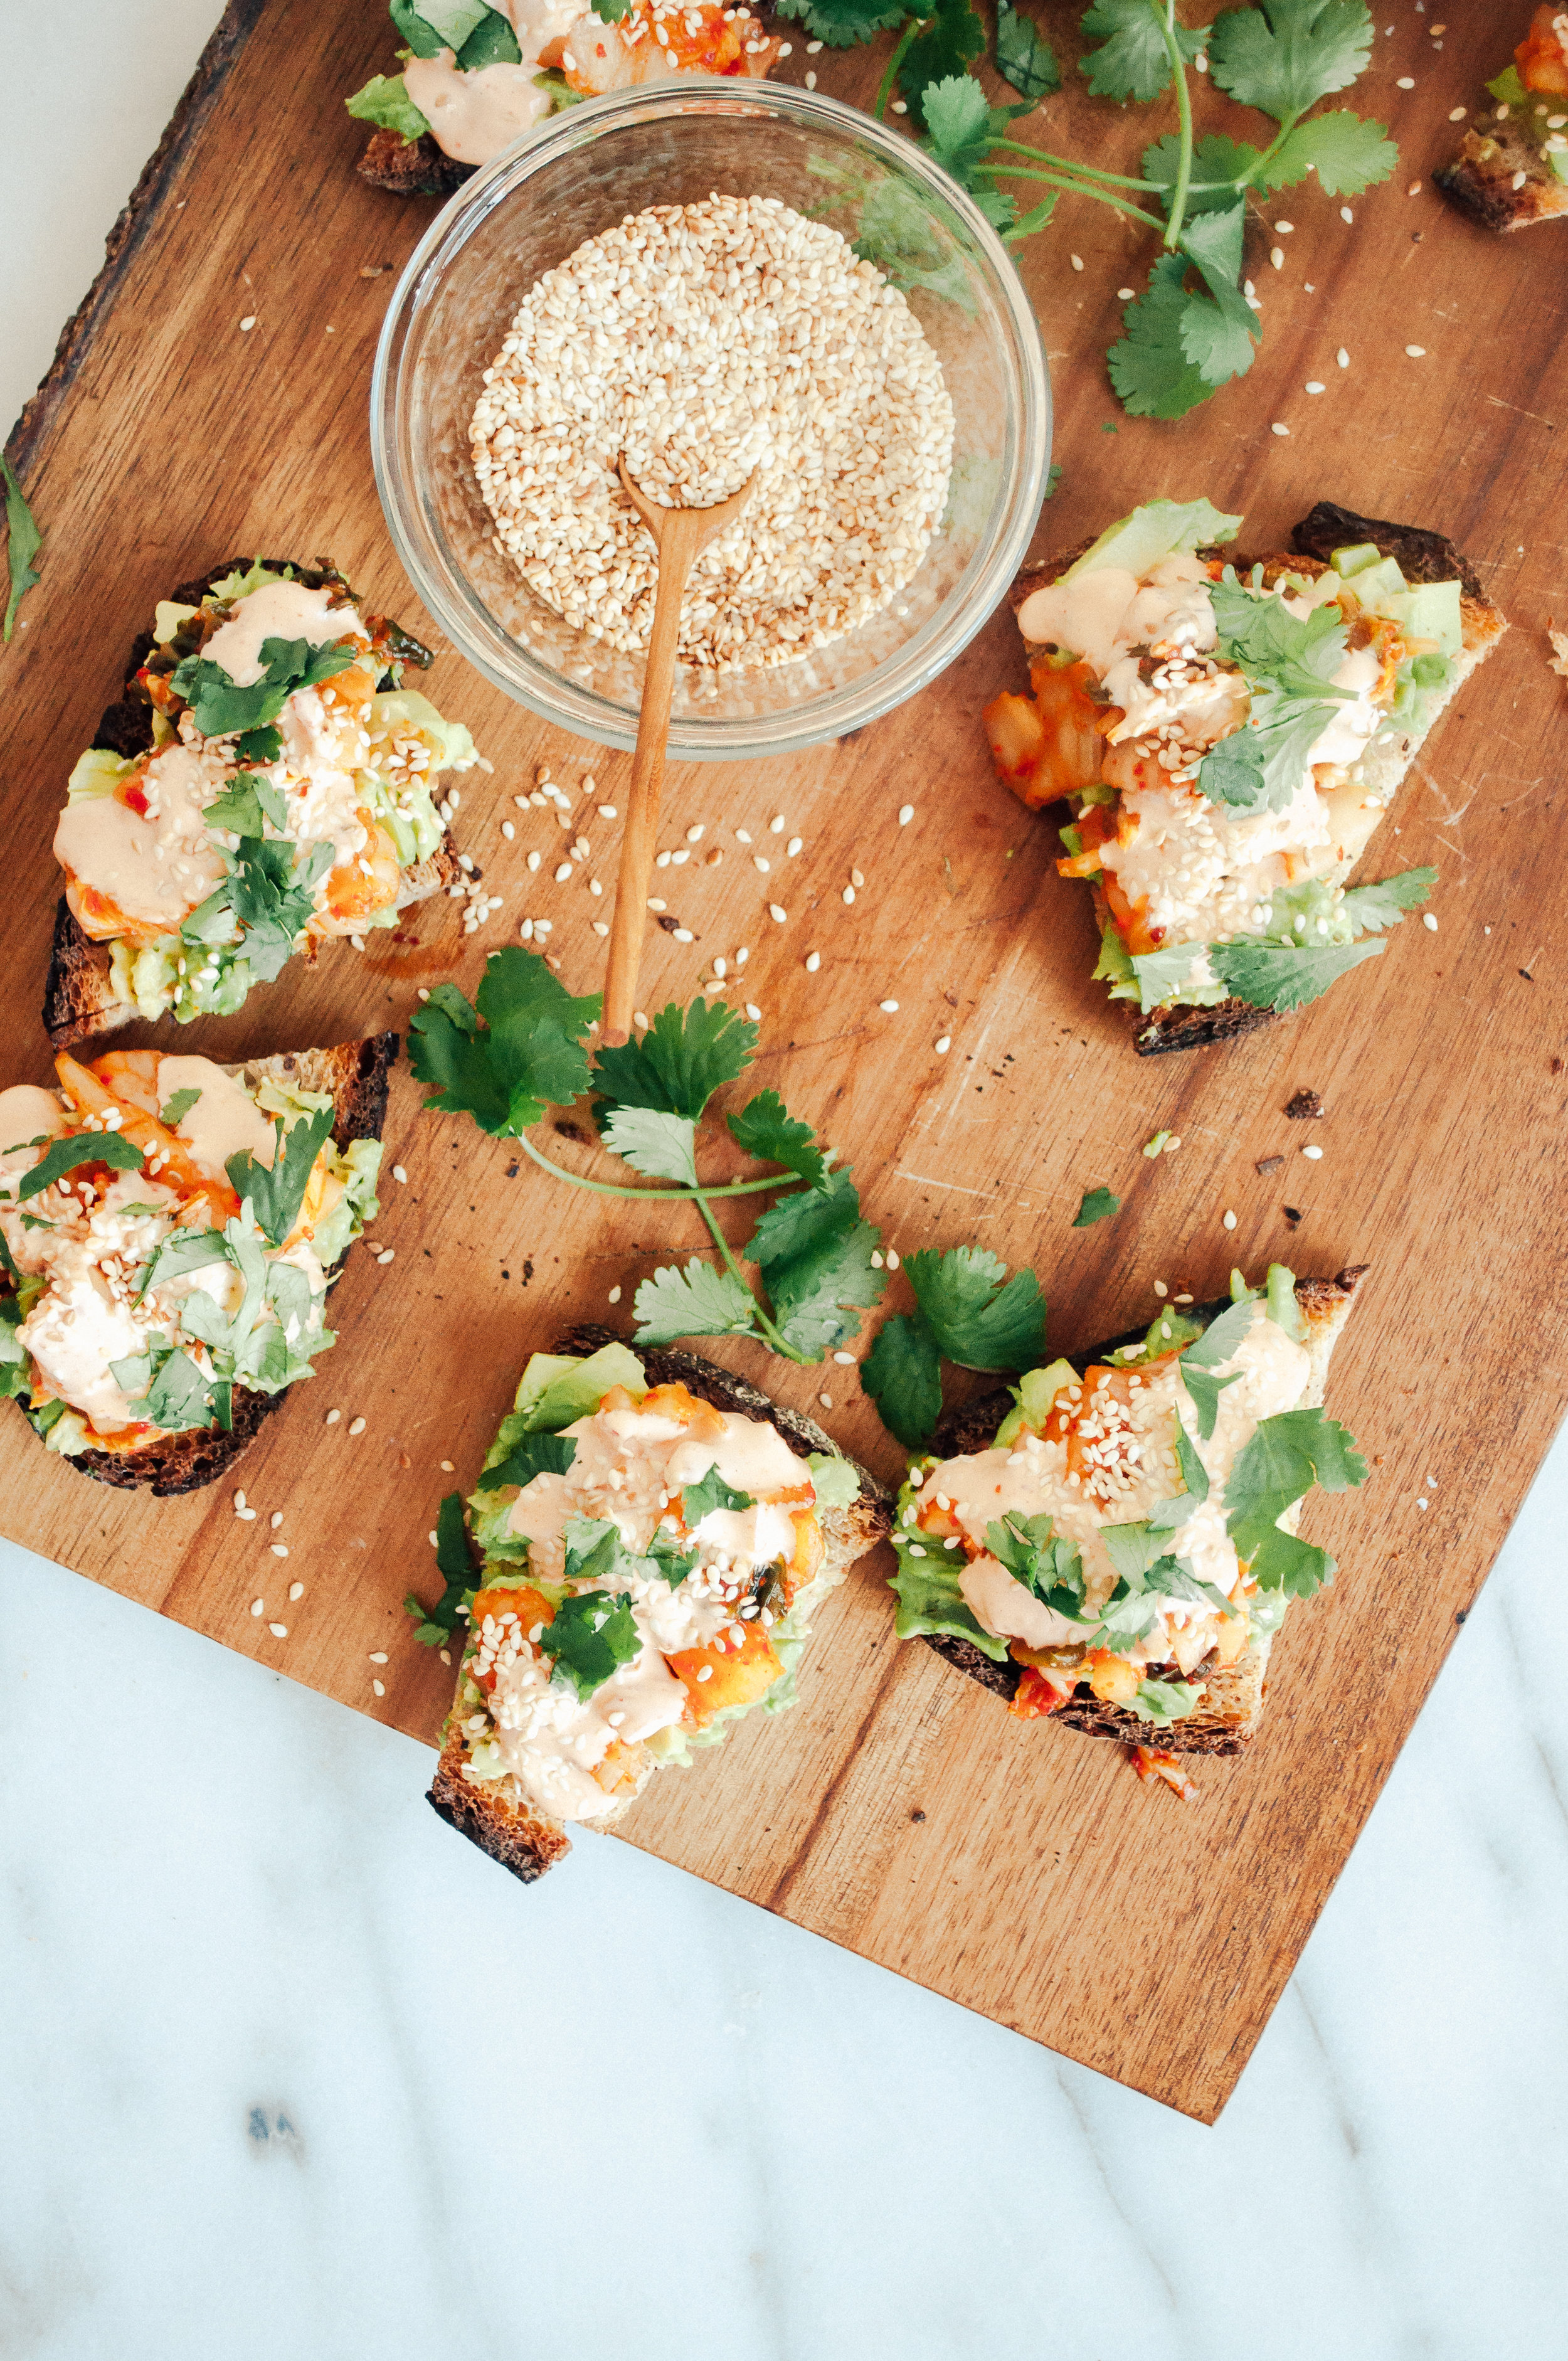 Summerfield Delight by Meg Summerfield   Review of Small Victories Cookbook by Julia Turshen   Avocado Kimchi Toasts